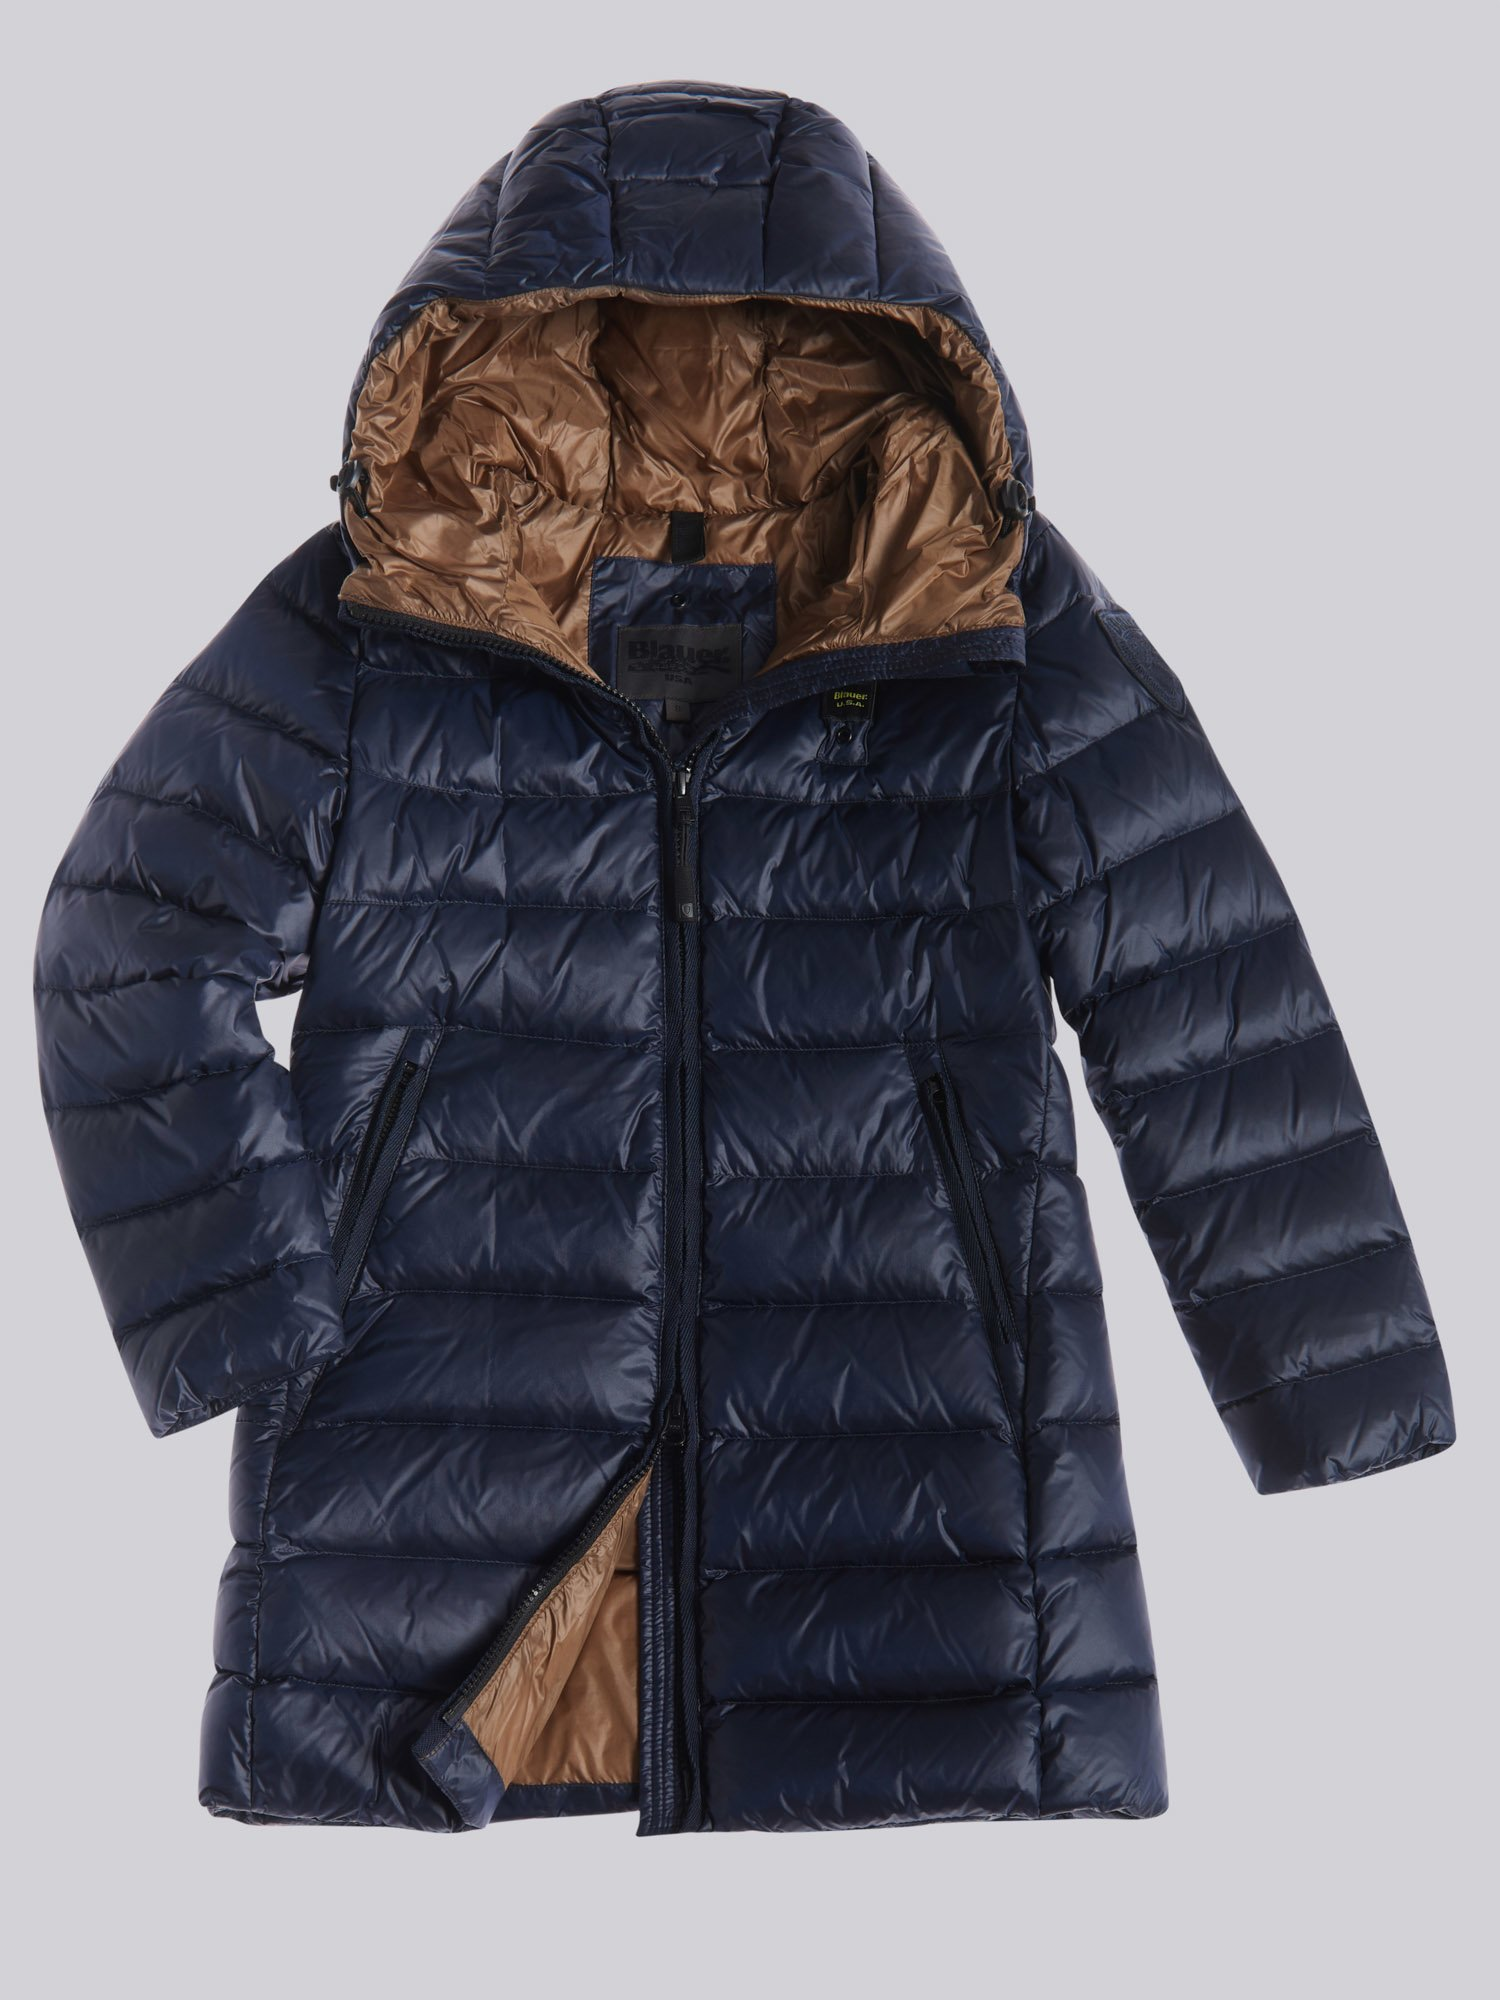 Blauer - MARYLIN LONG DOWN JACKET - Blue Ins Dachshund - Blauer